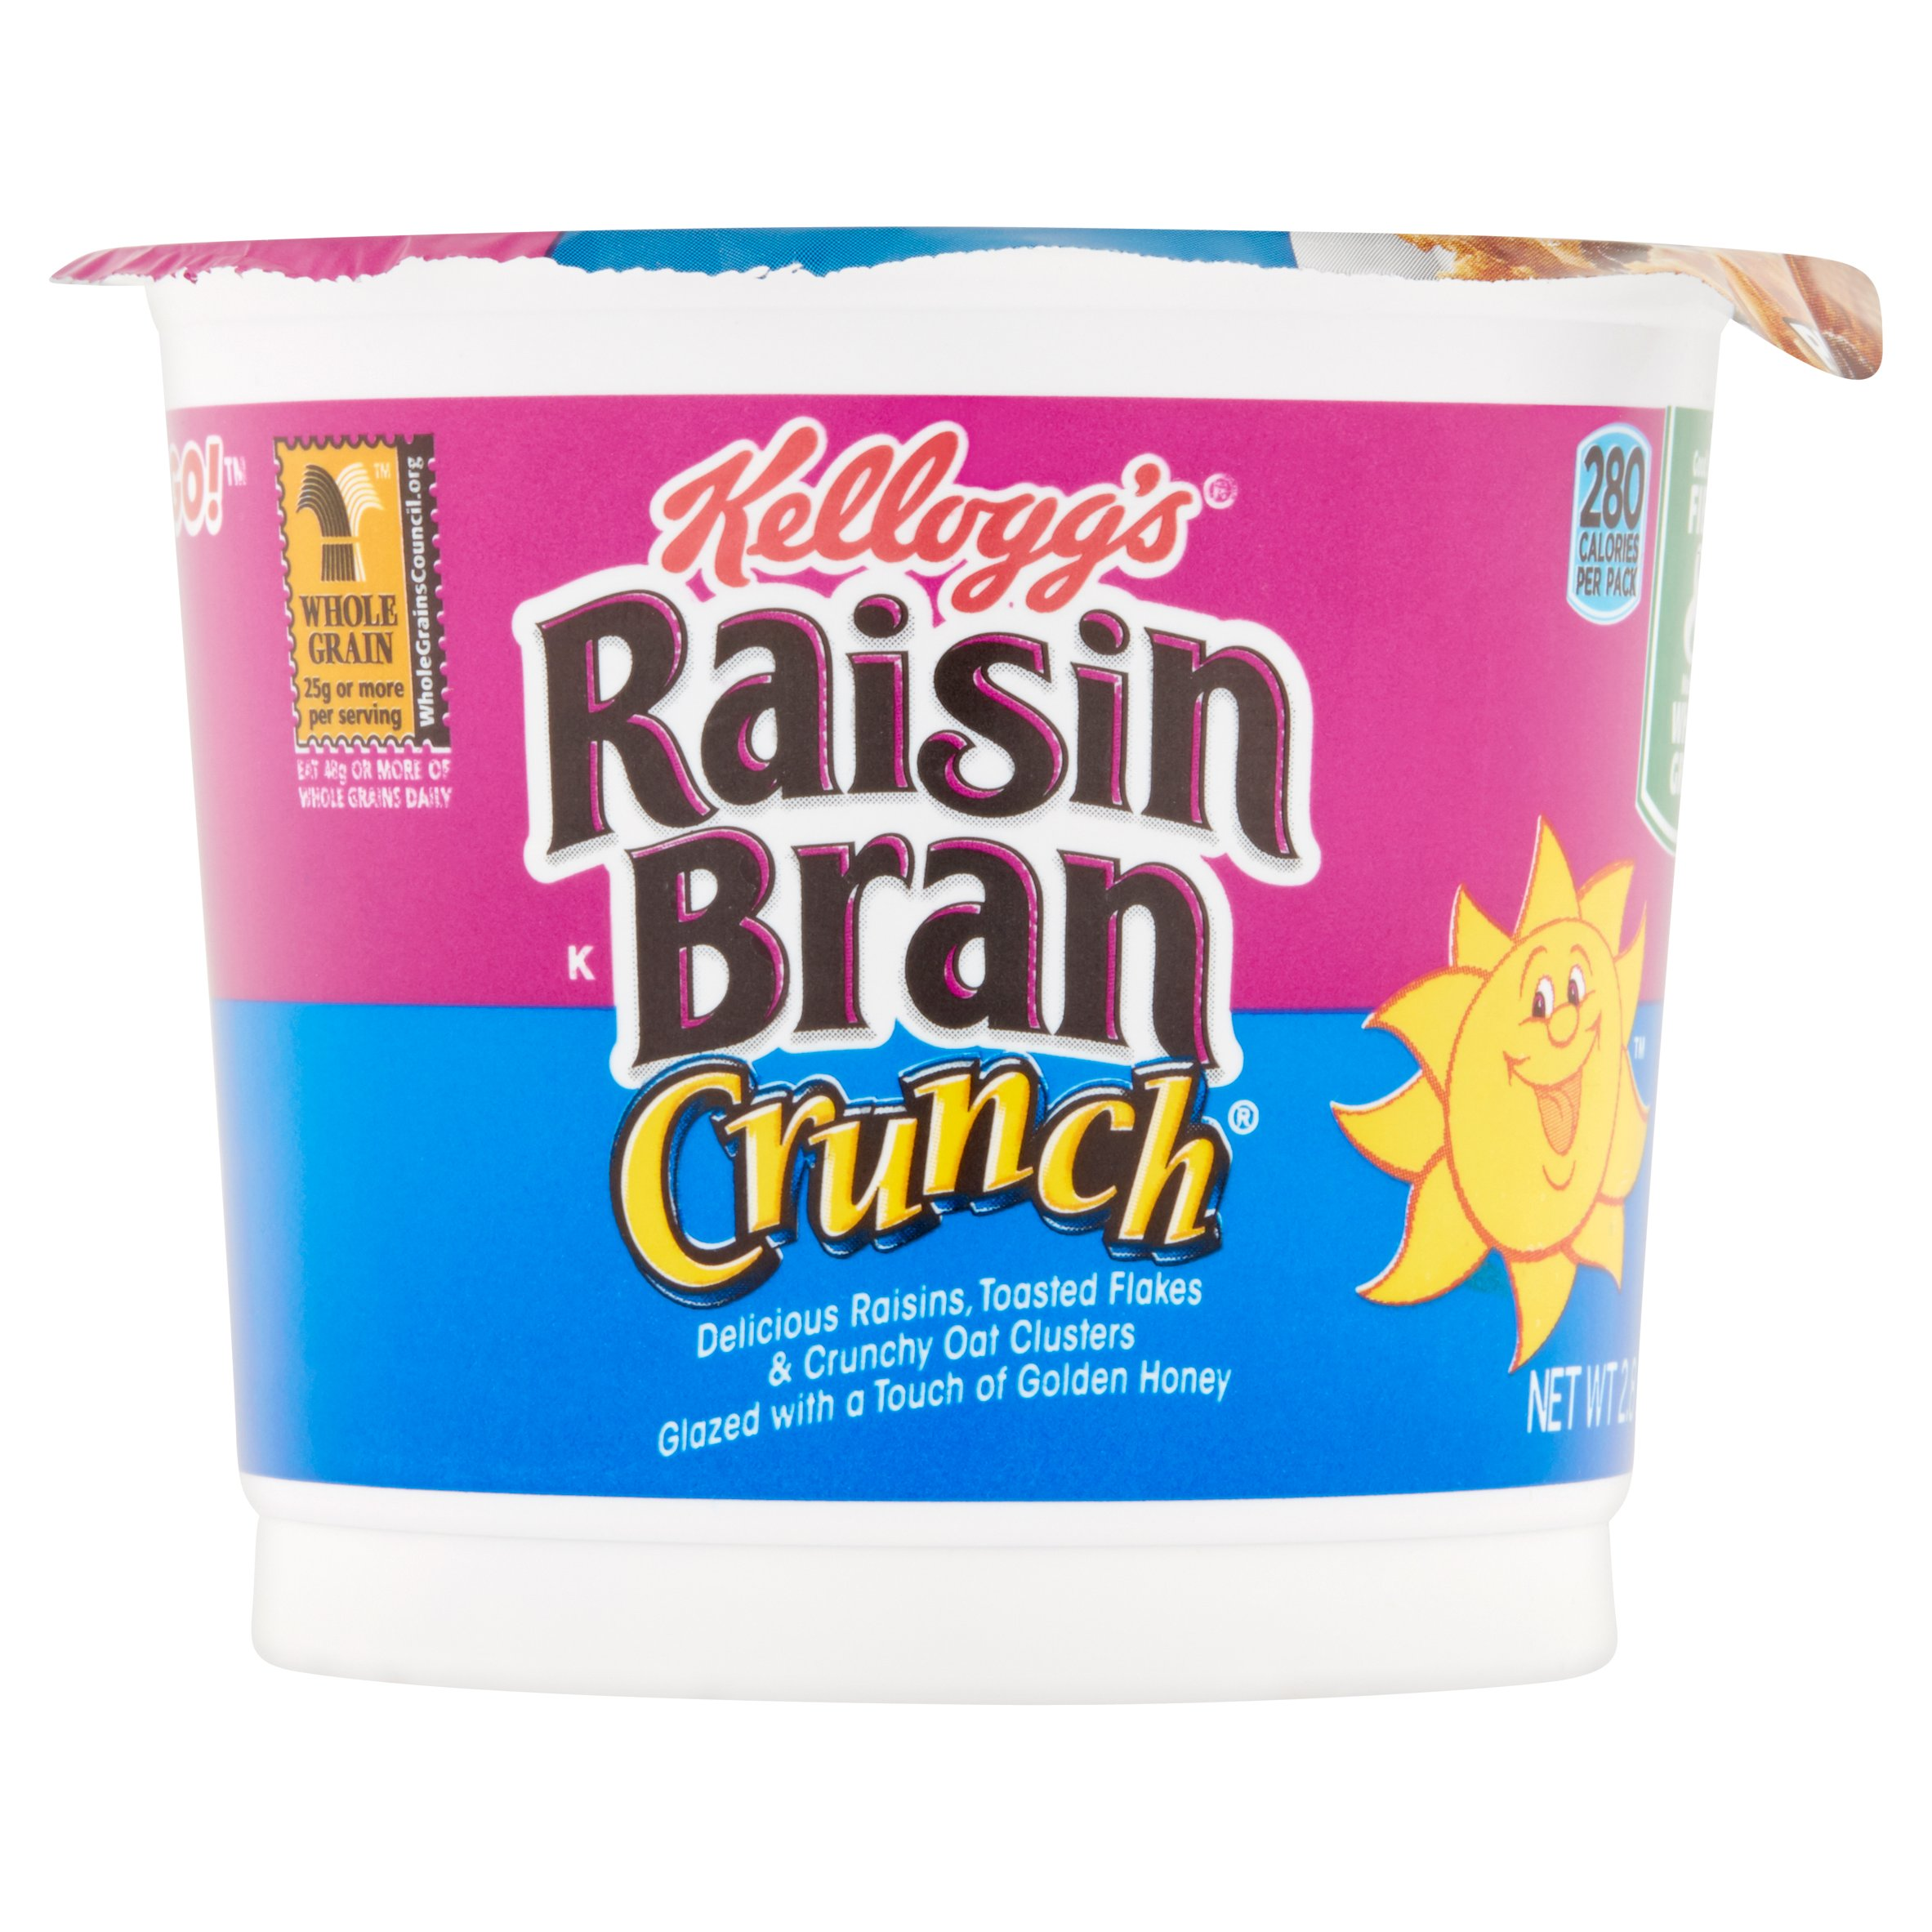 Kellogg's Raisin Bran Crunch Cereal, 2.8 oz, 12 pack